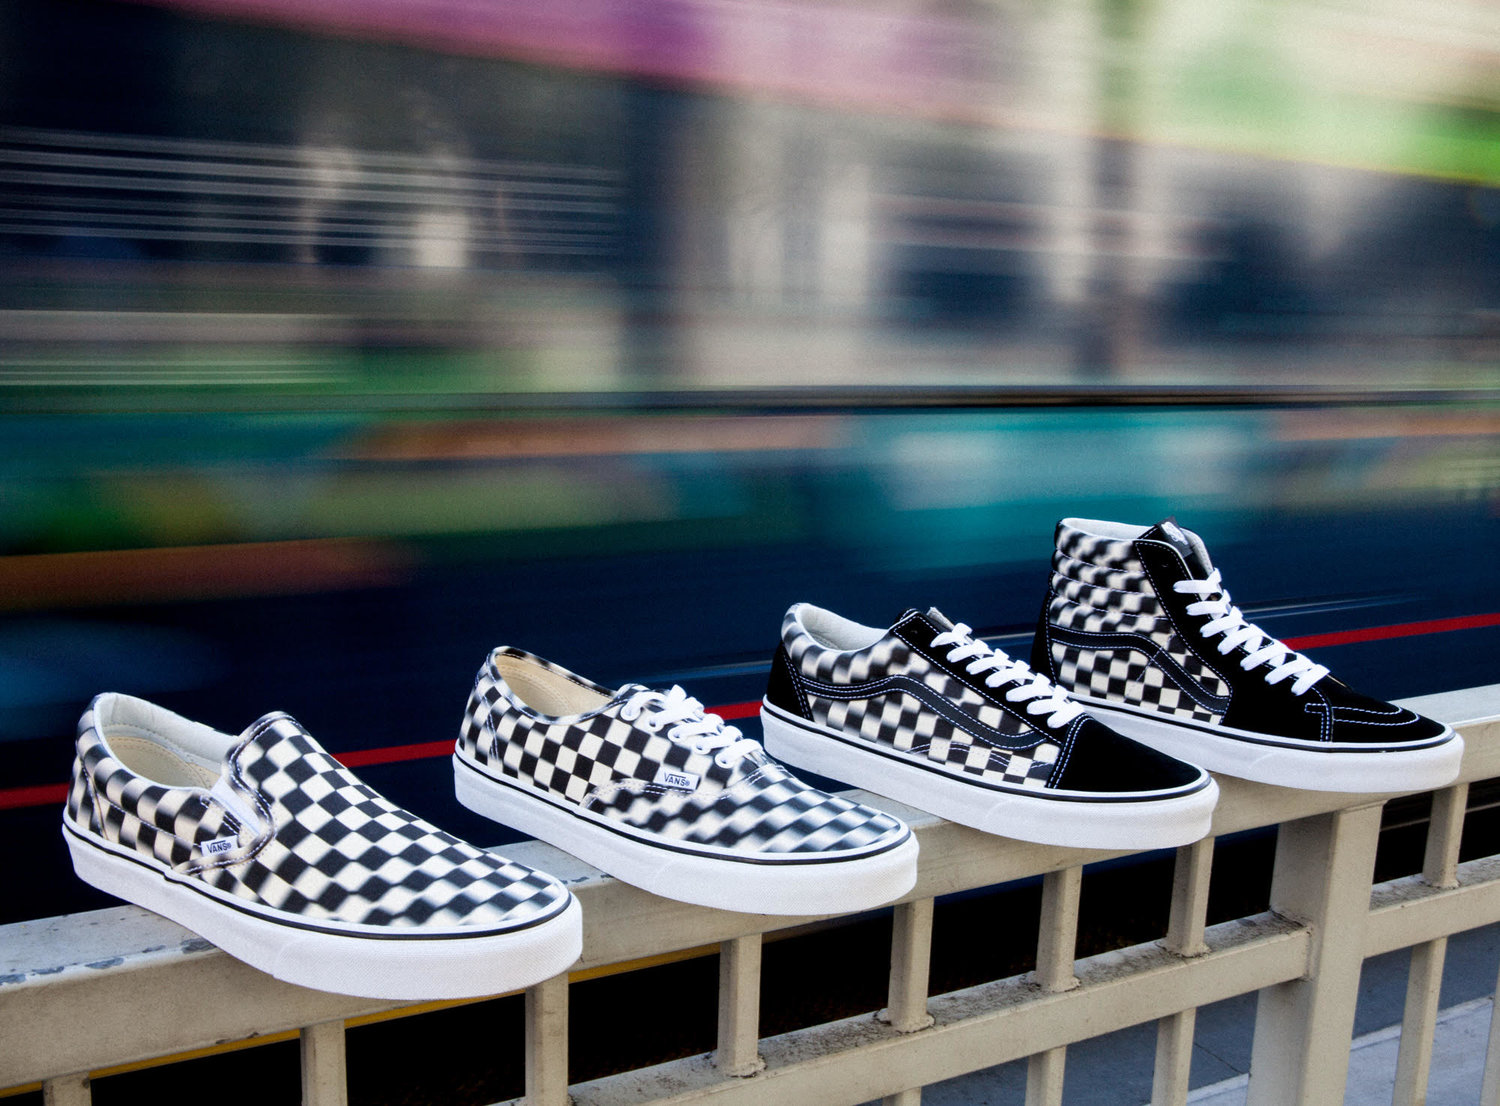 54f8deefda The Lines Get Blurred With Vans New Blur Check Pack — CNK ...